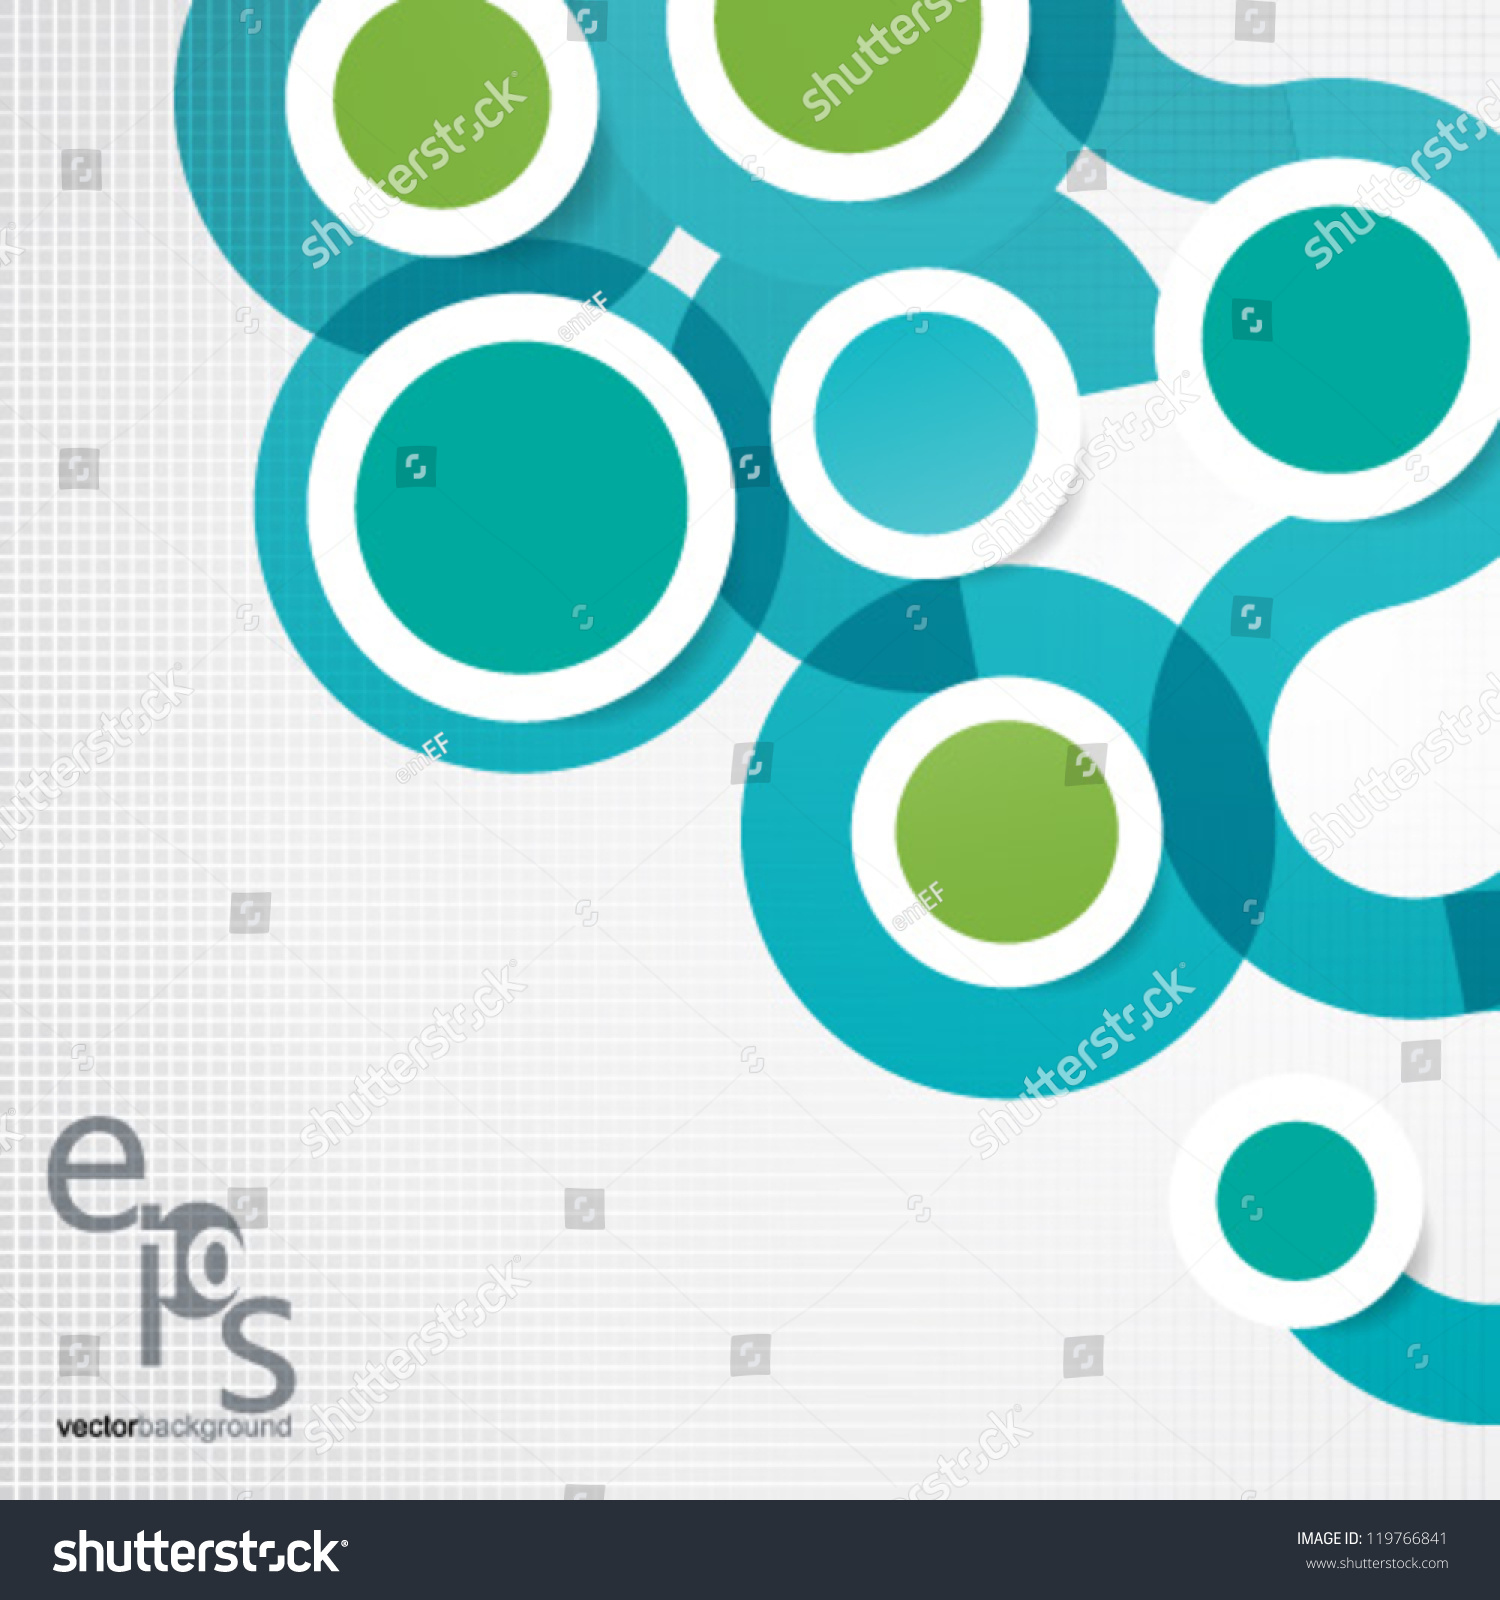 Vector Design Eps10 Simple Colorful Circles Stock Vector 119766841 ...